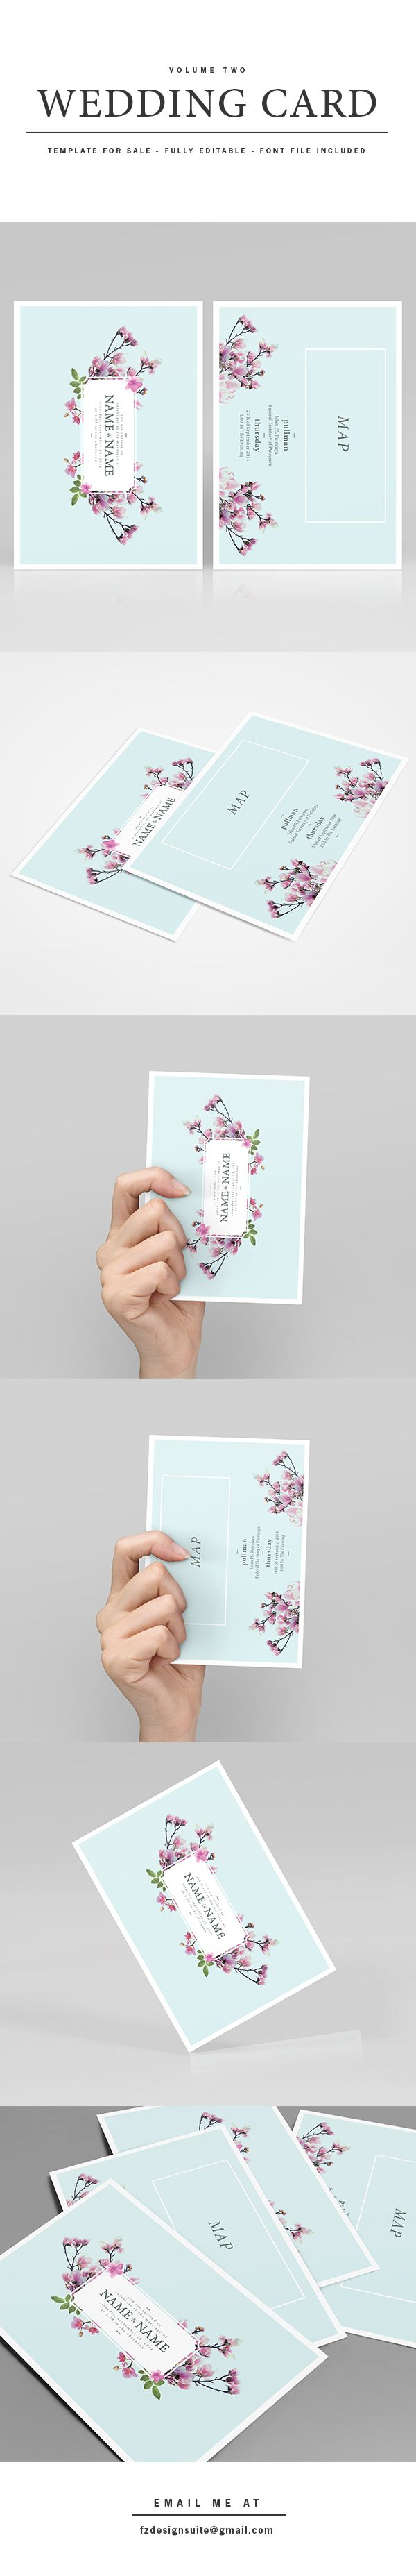 (FOR SALE) Wedding Invitation Template - Volume 2 by Faridz Design Suite, via Behance